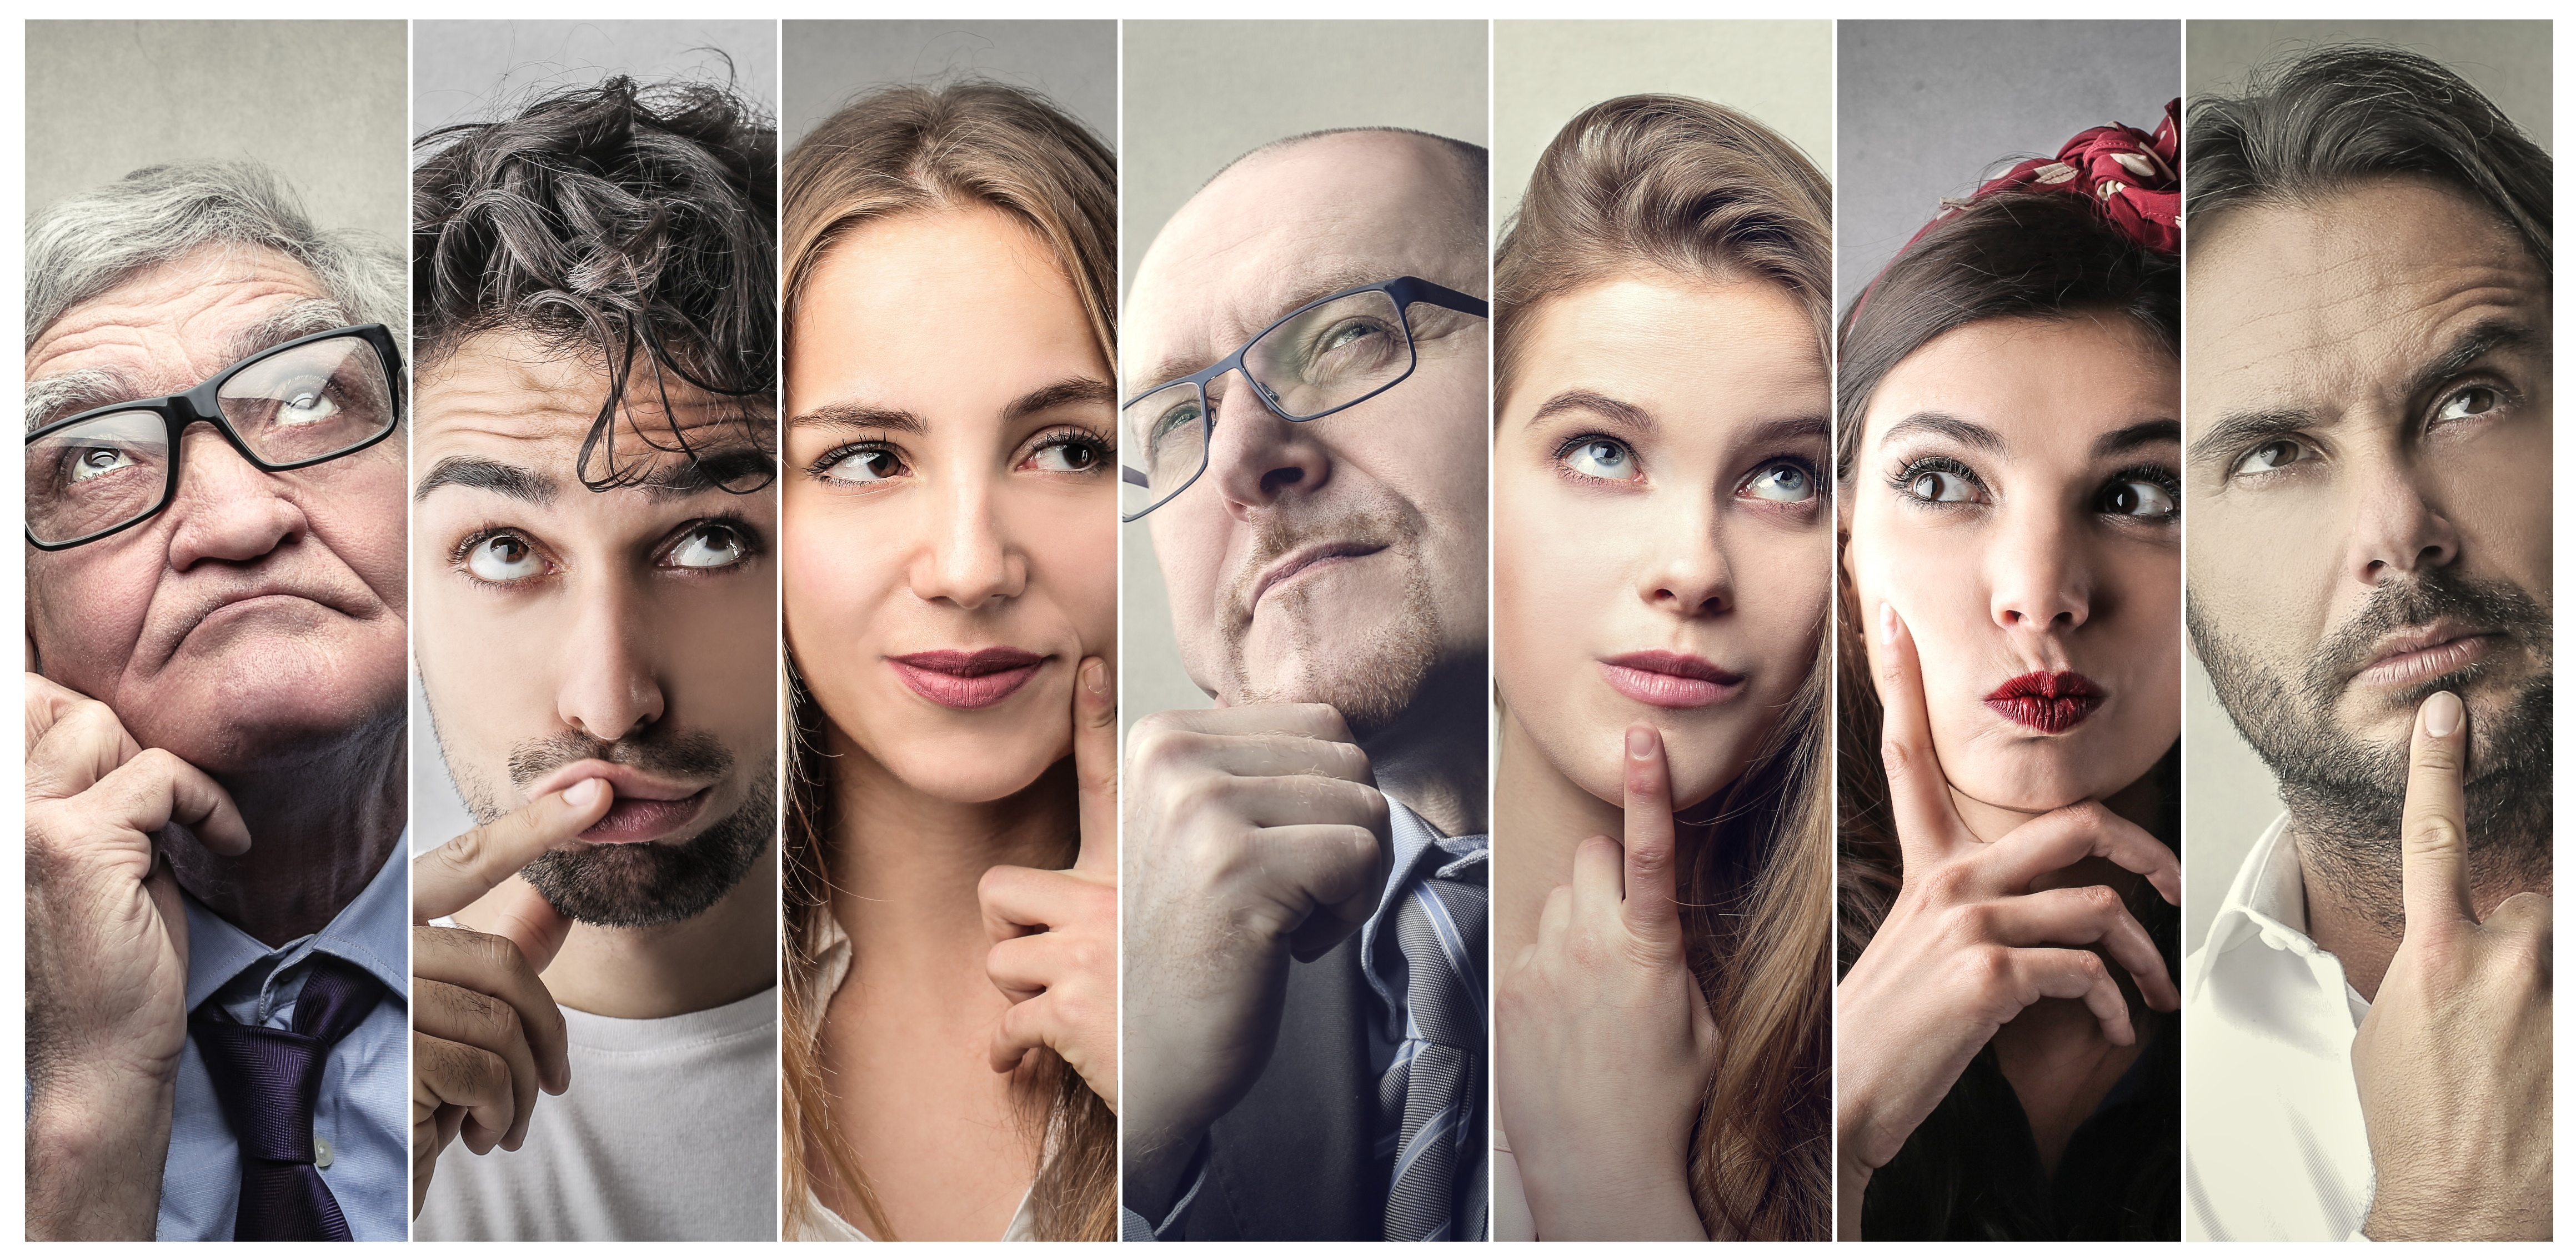 bigstock-Portraits-of-people-thinking-93468875.jpg